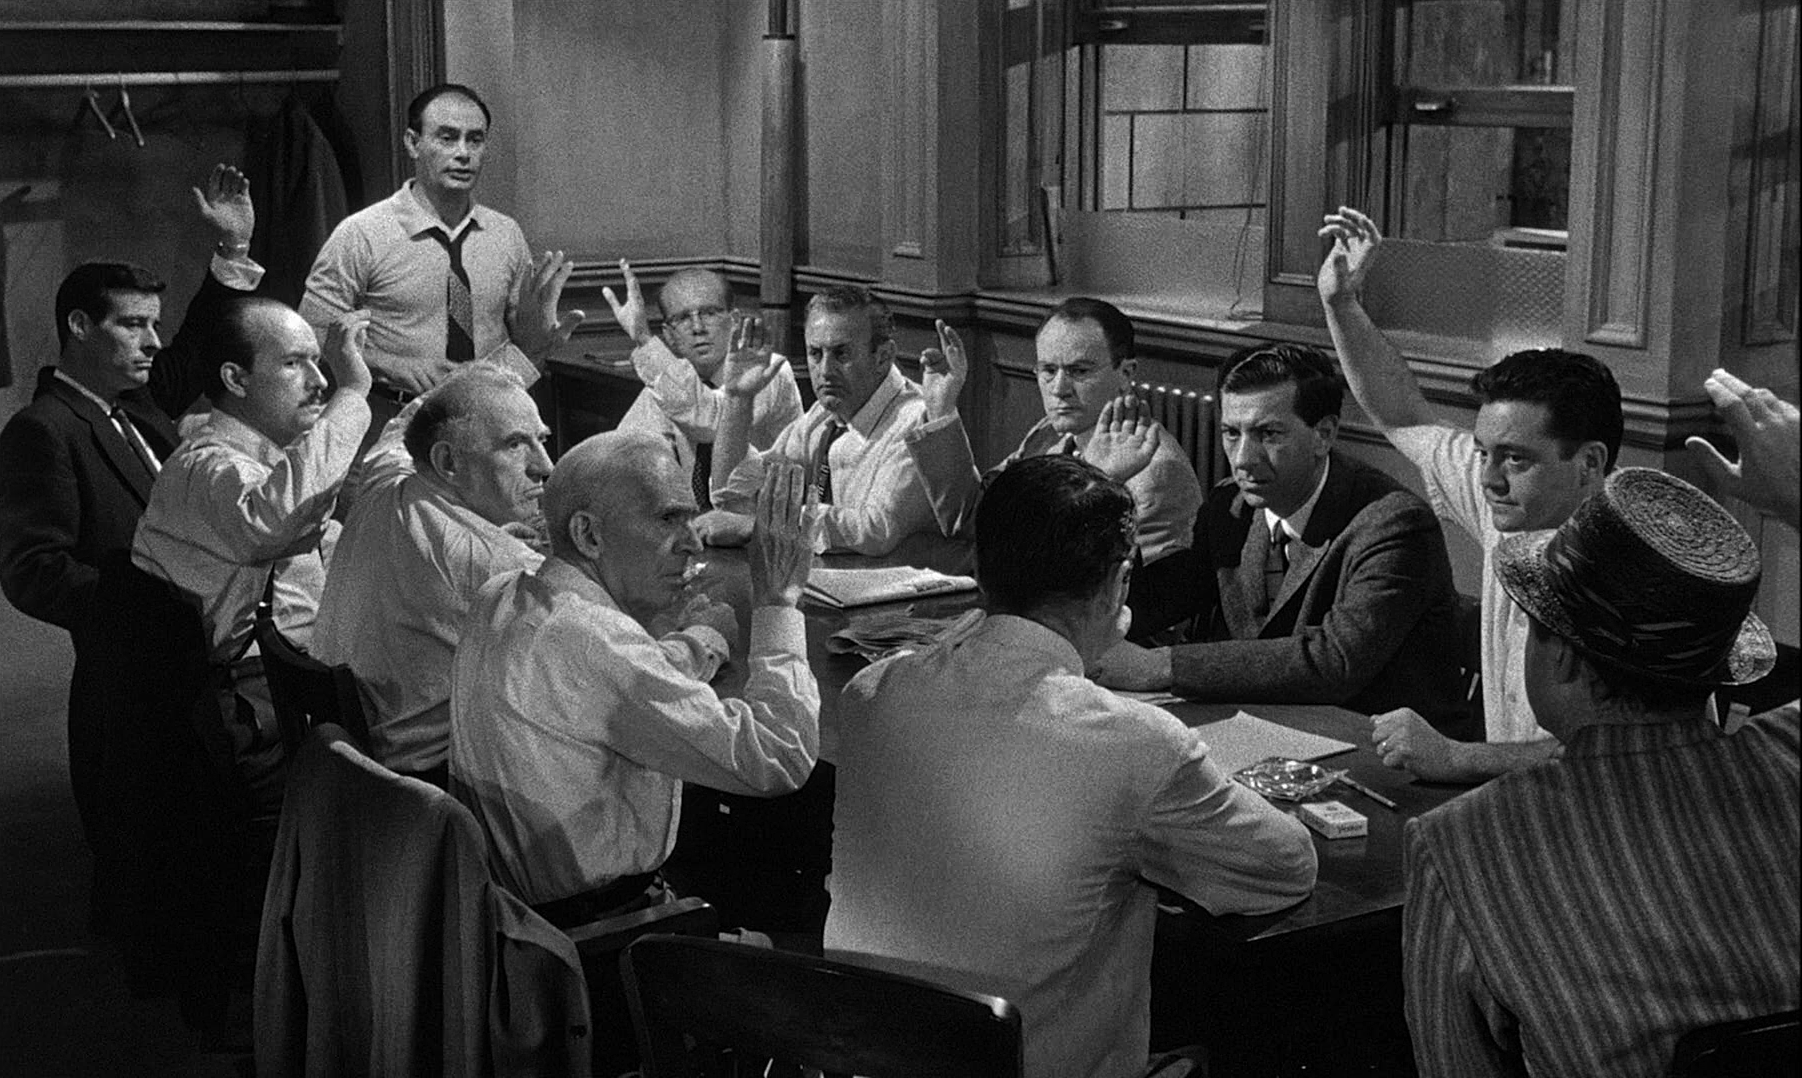 Twelve Angry Men Wallpaper and Background Image 1802x1078 ID 1802x1078